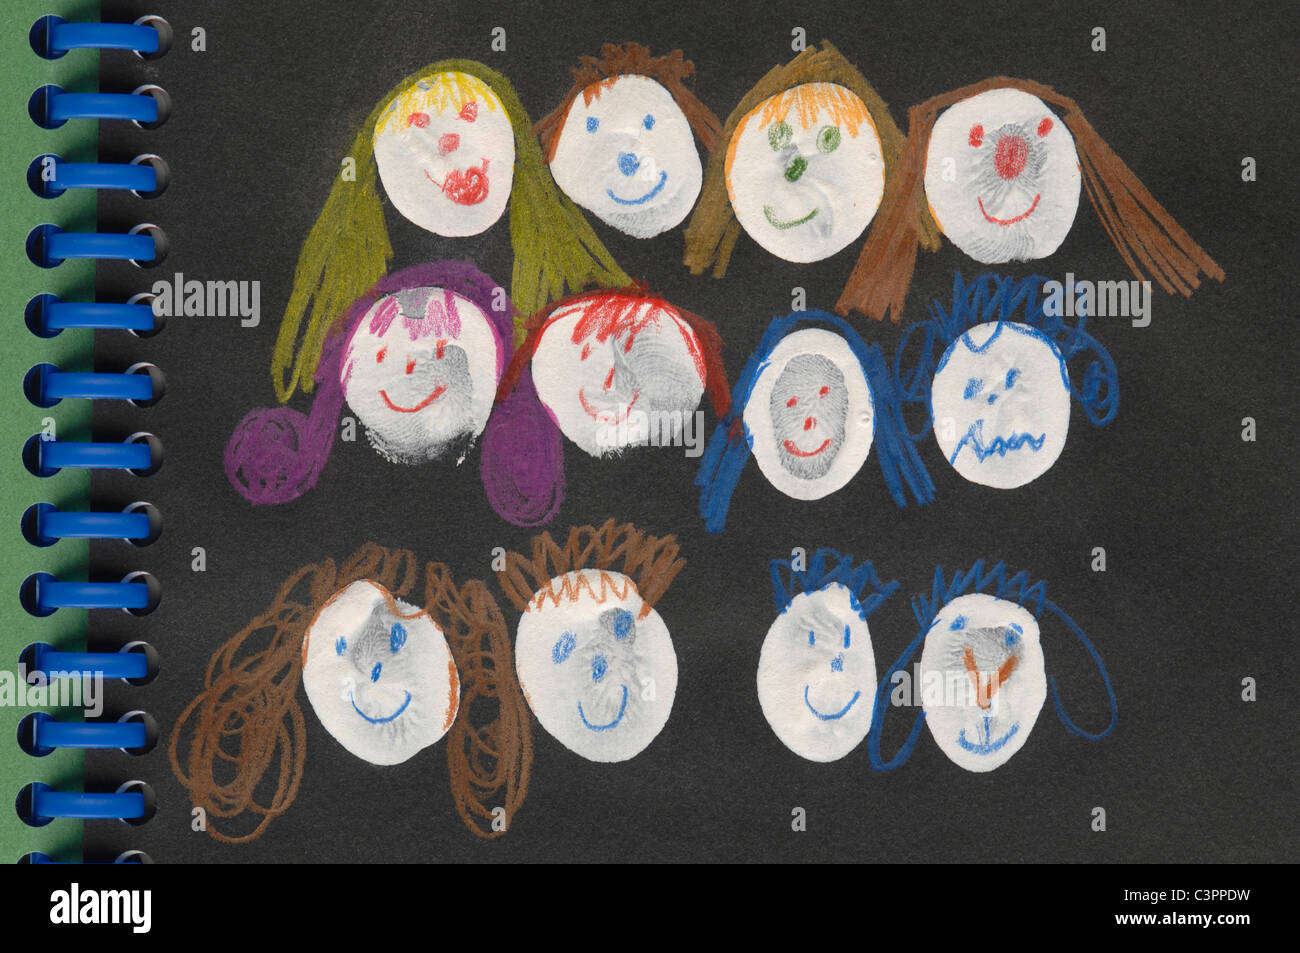 Germany, Munich, Variety of anthropomorphic faces in exercise book - Stock Image